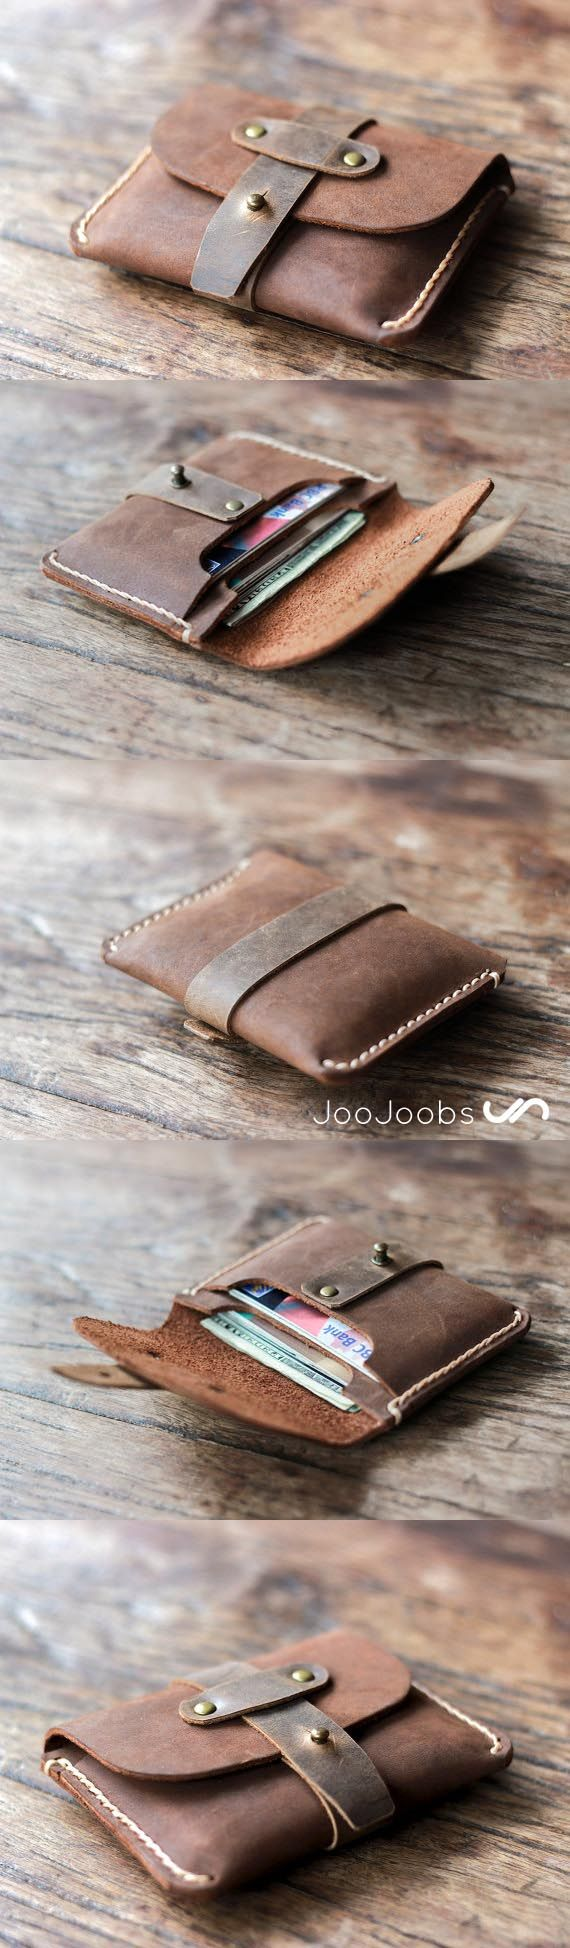 Bridesmaid Gift ideas that will be loved and cherished. Handmade by the master leathersmith, Noi, from the JooJoobs workshop.